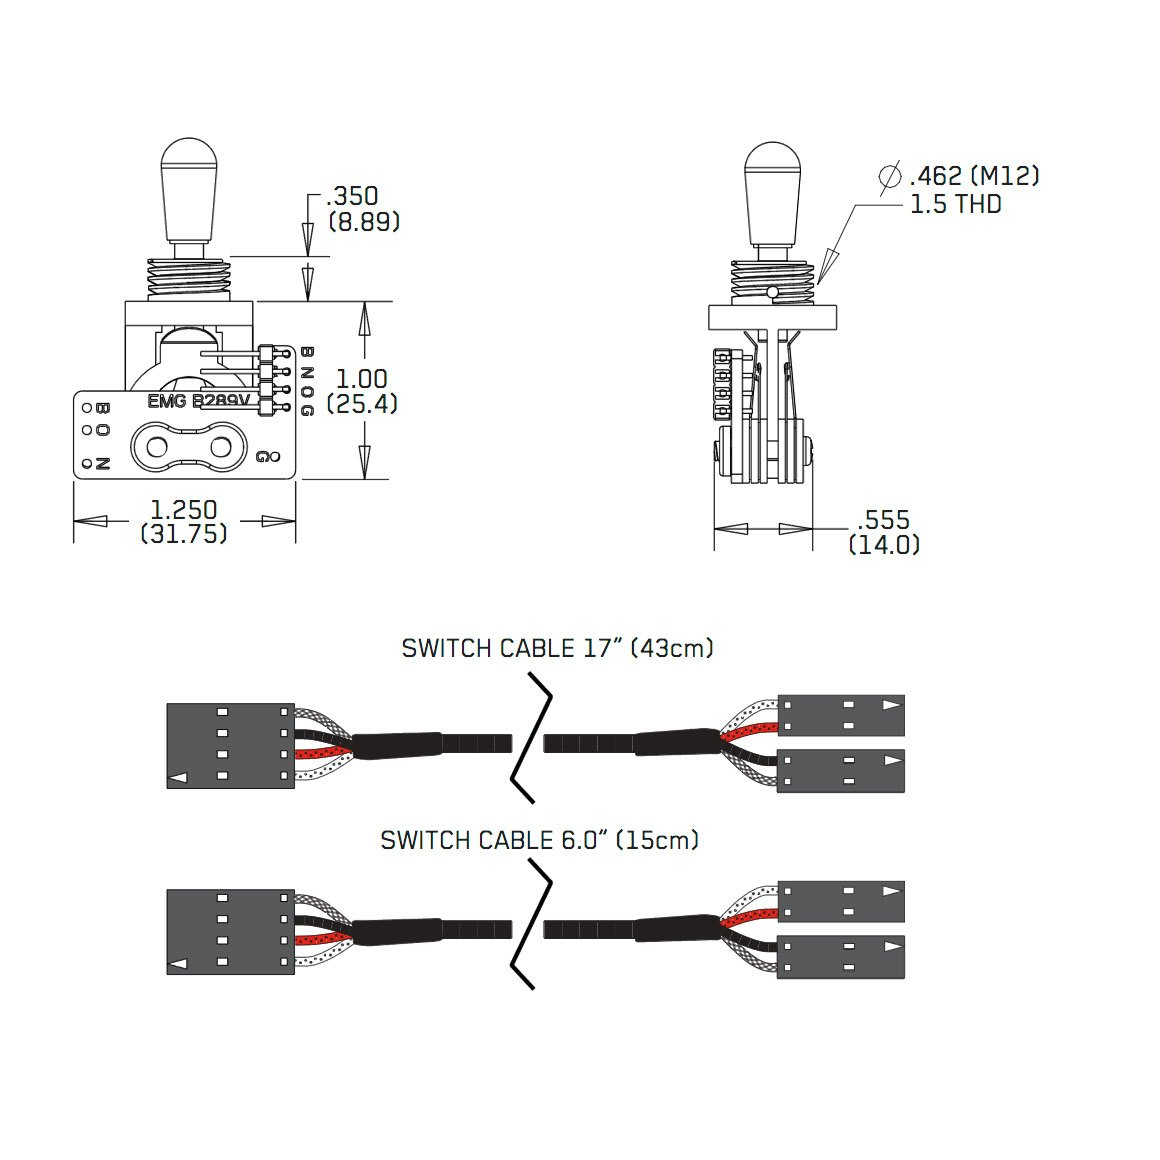 Wiring Diagram Gallery: Emg Wiring Diagram 3 Way Switch